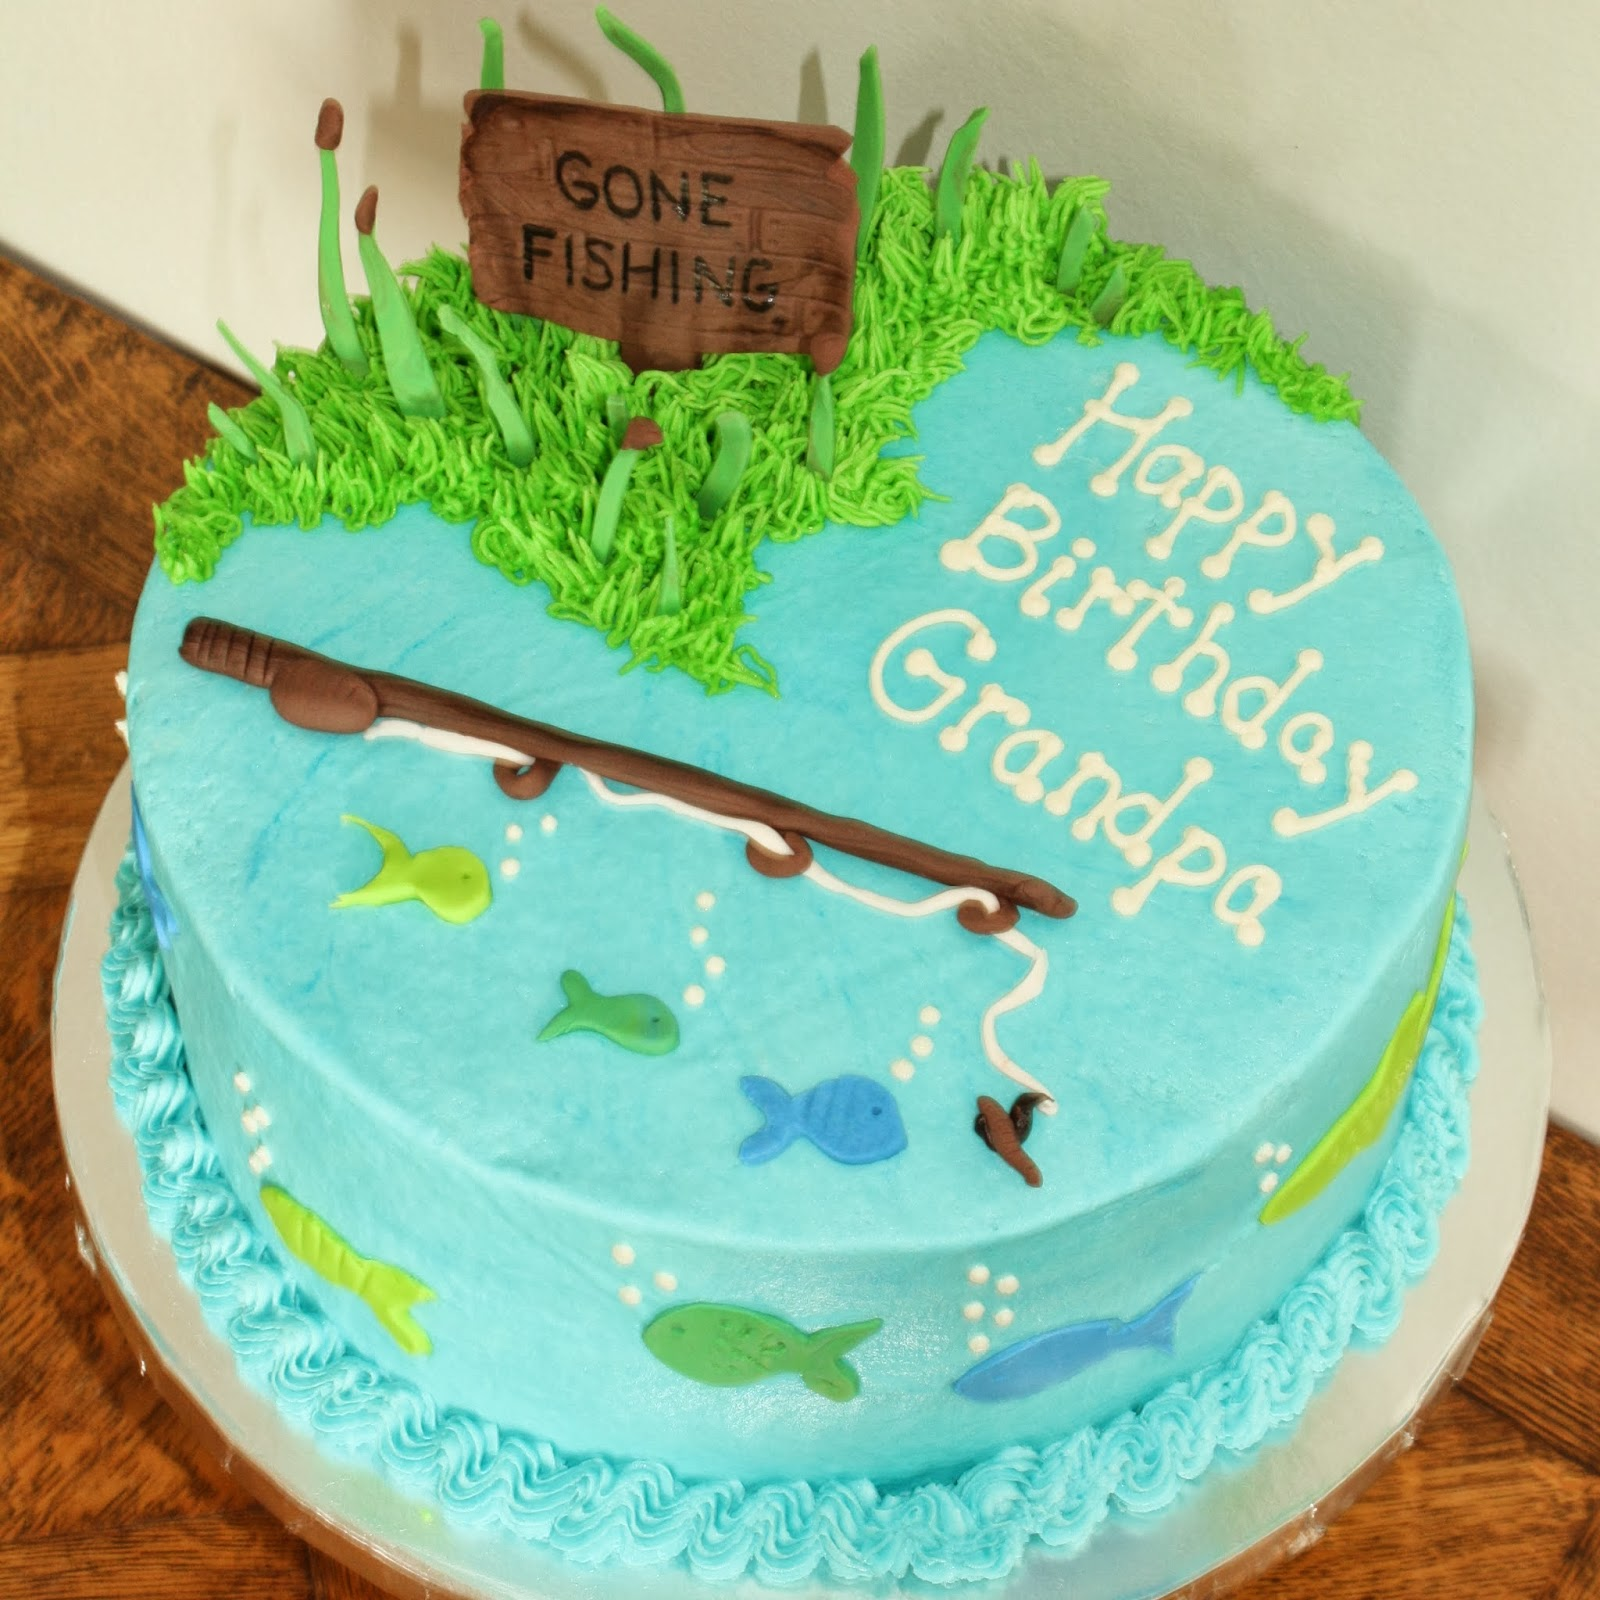 Kake gone fishing cake for Gone fishing cake